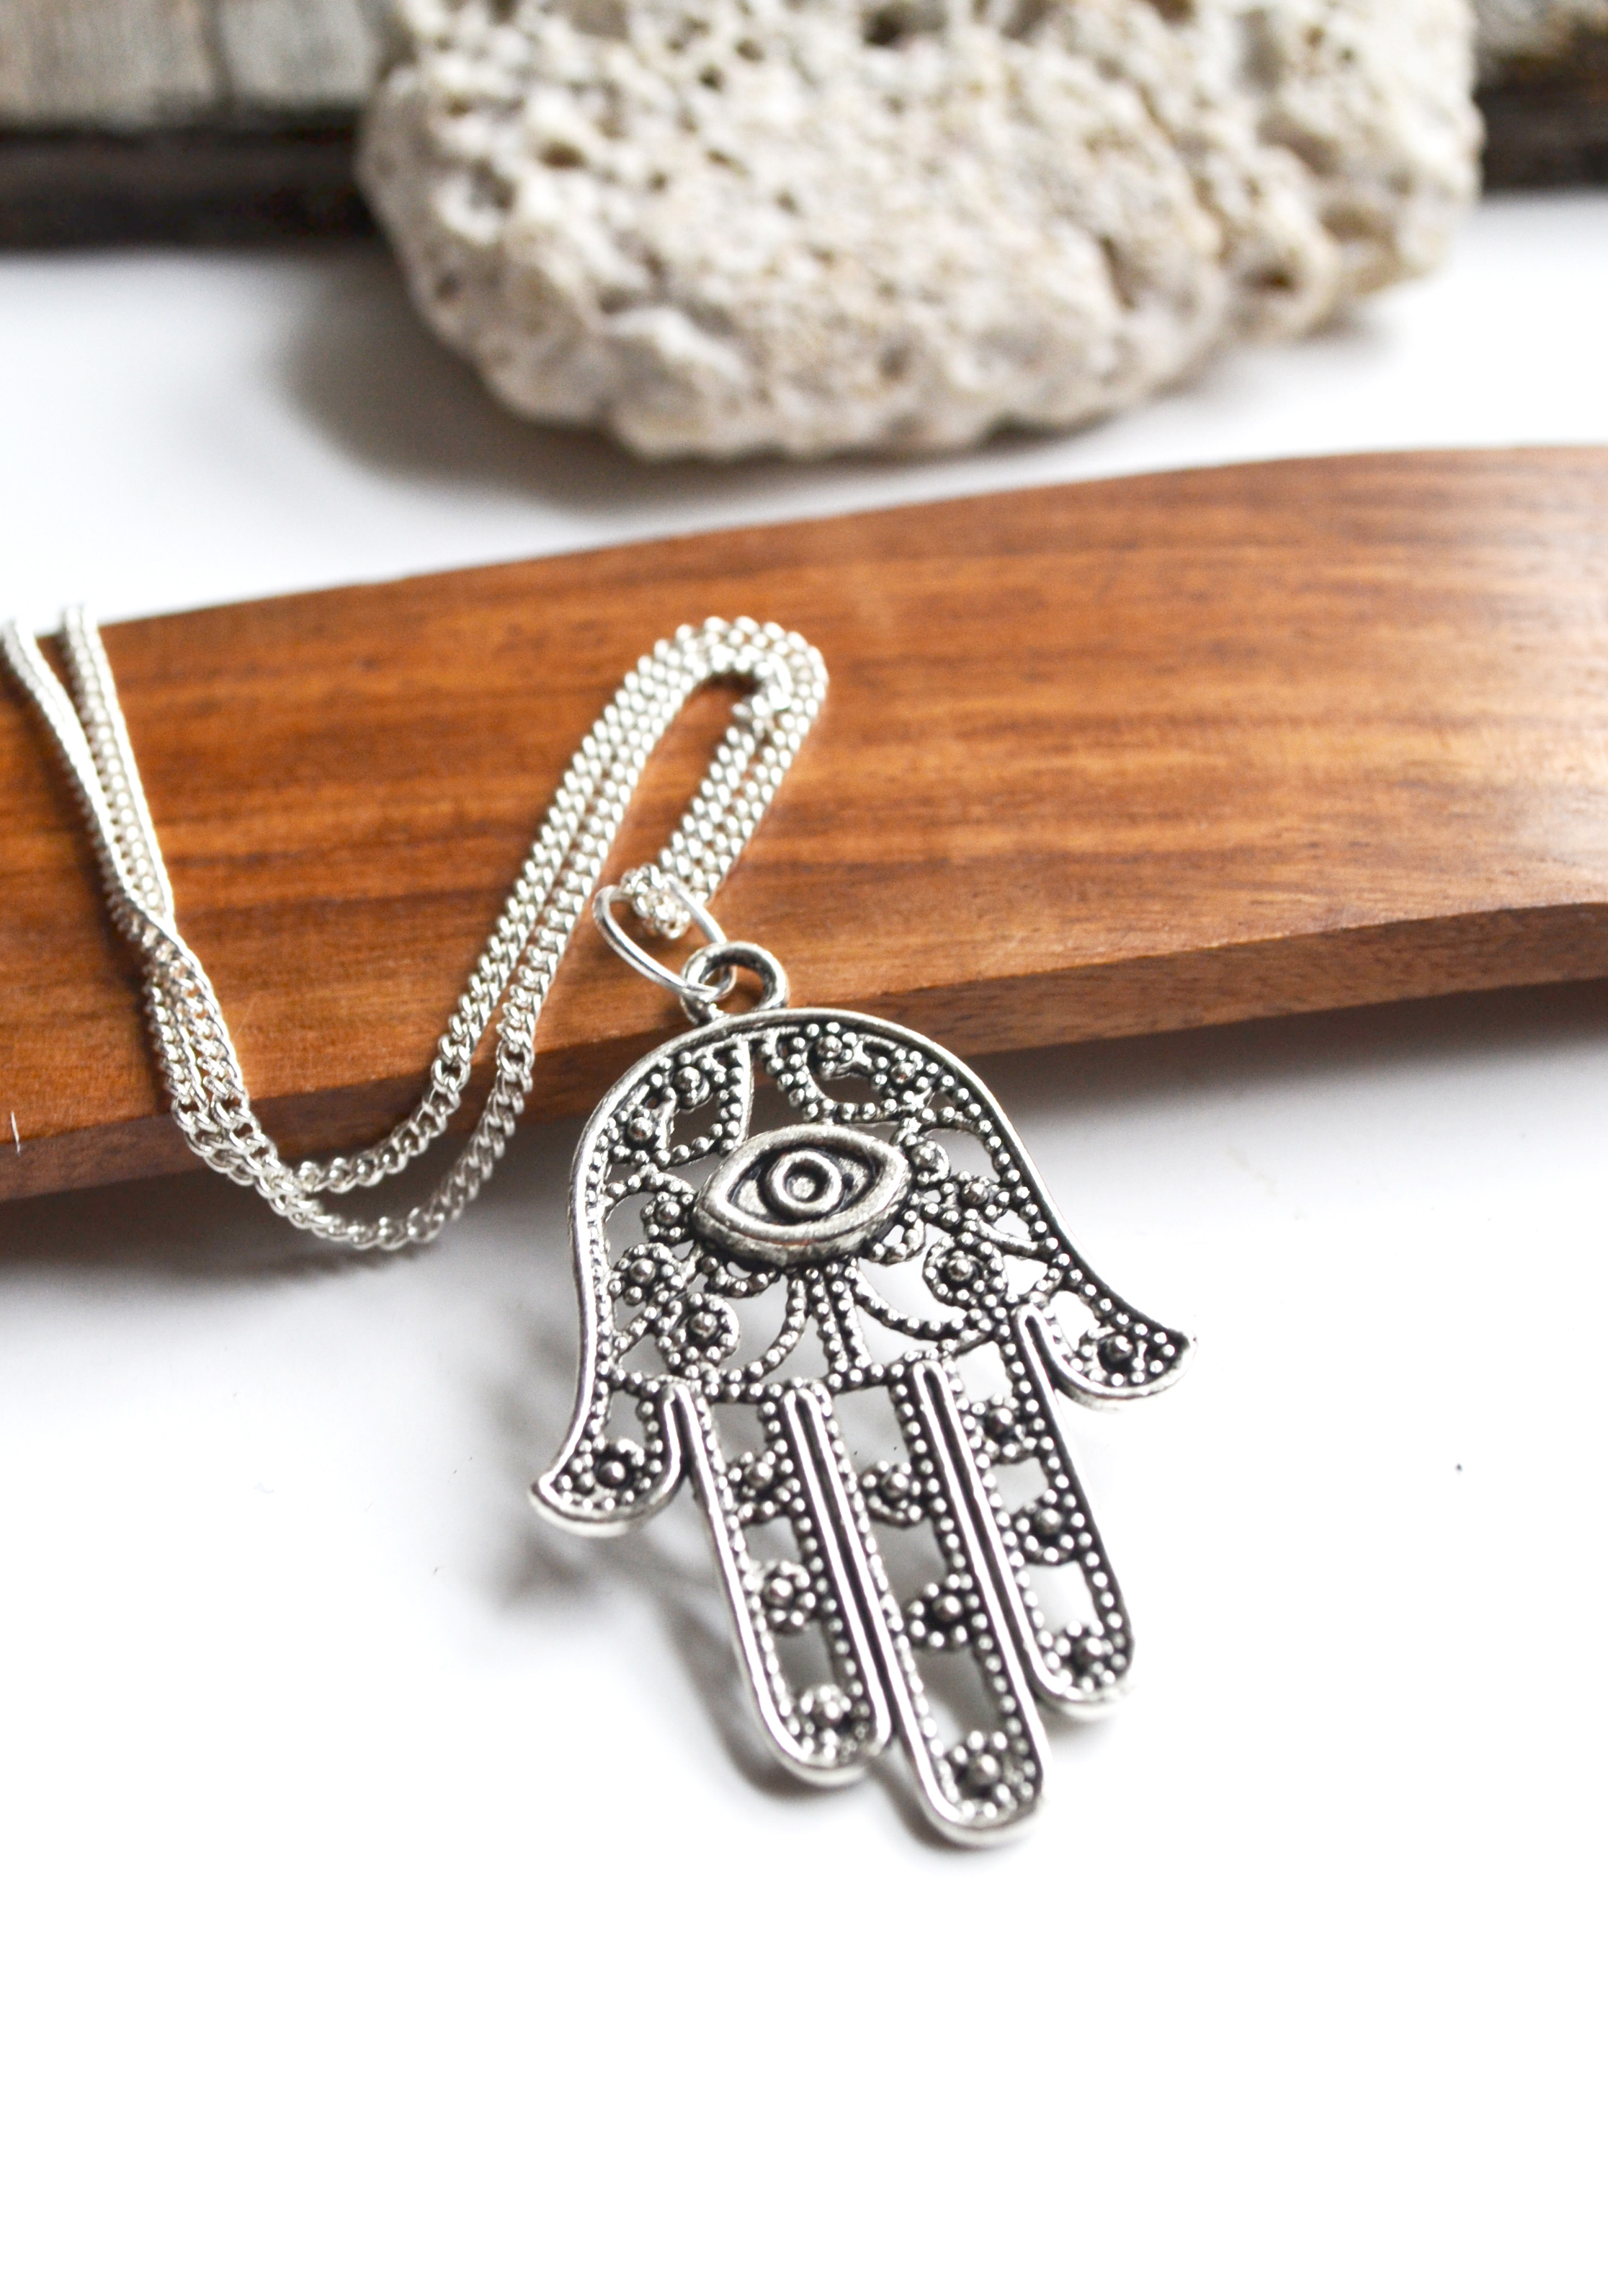 Hamsa hand necklace evil eye protection necklace hamsa jewelry hamsa hand necklace evil eye protection necklace hamsa jewelry evil eye jewelry aloadofball Images